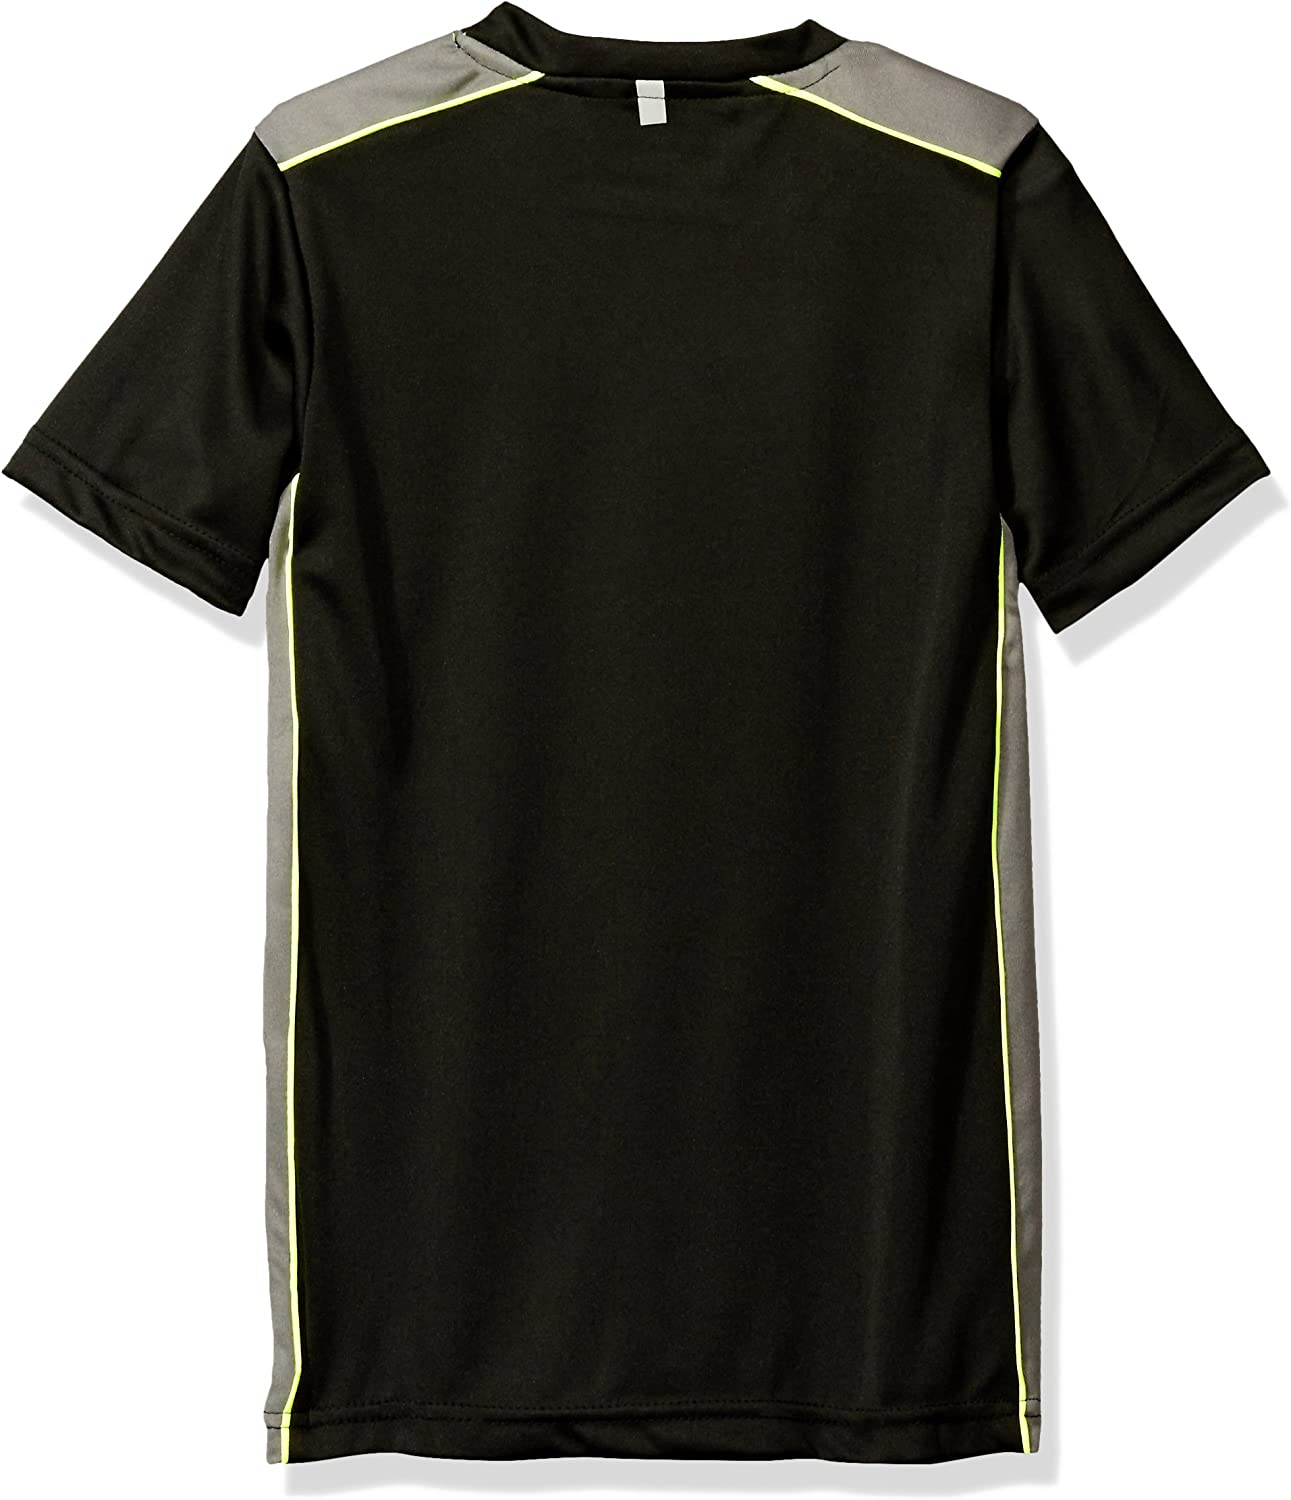 RPX Boys Slim Size Training Shirt with Piping